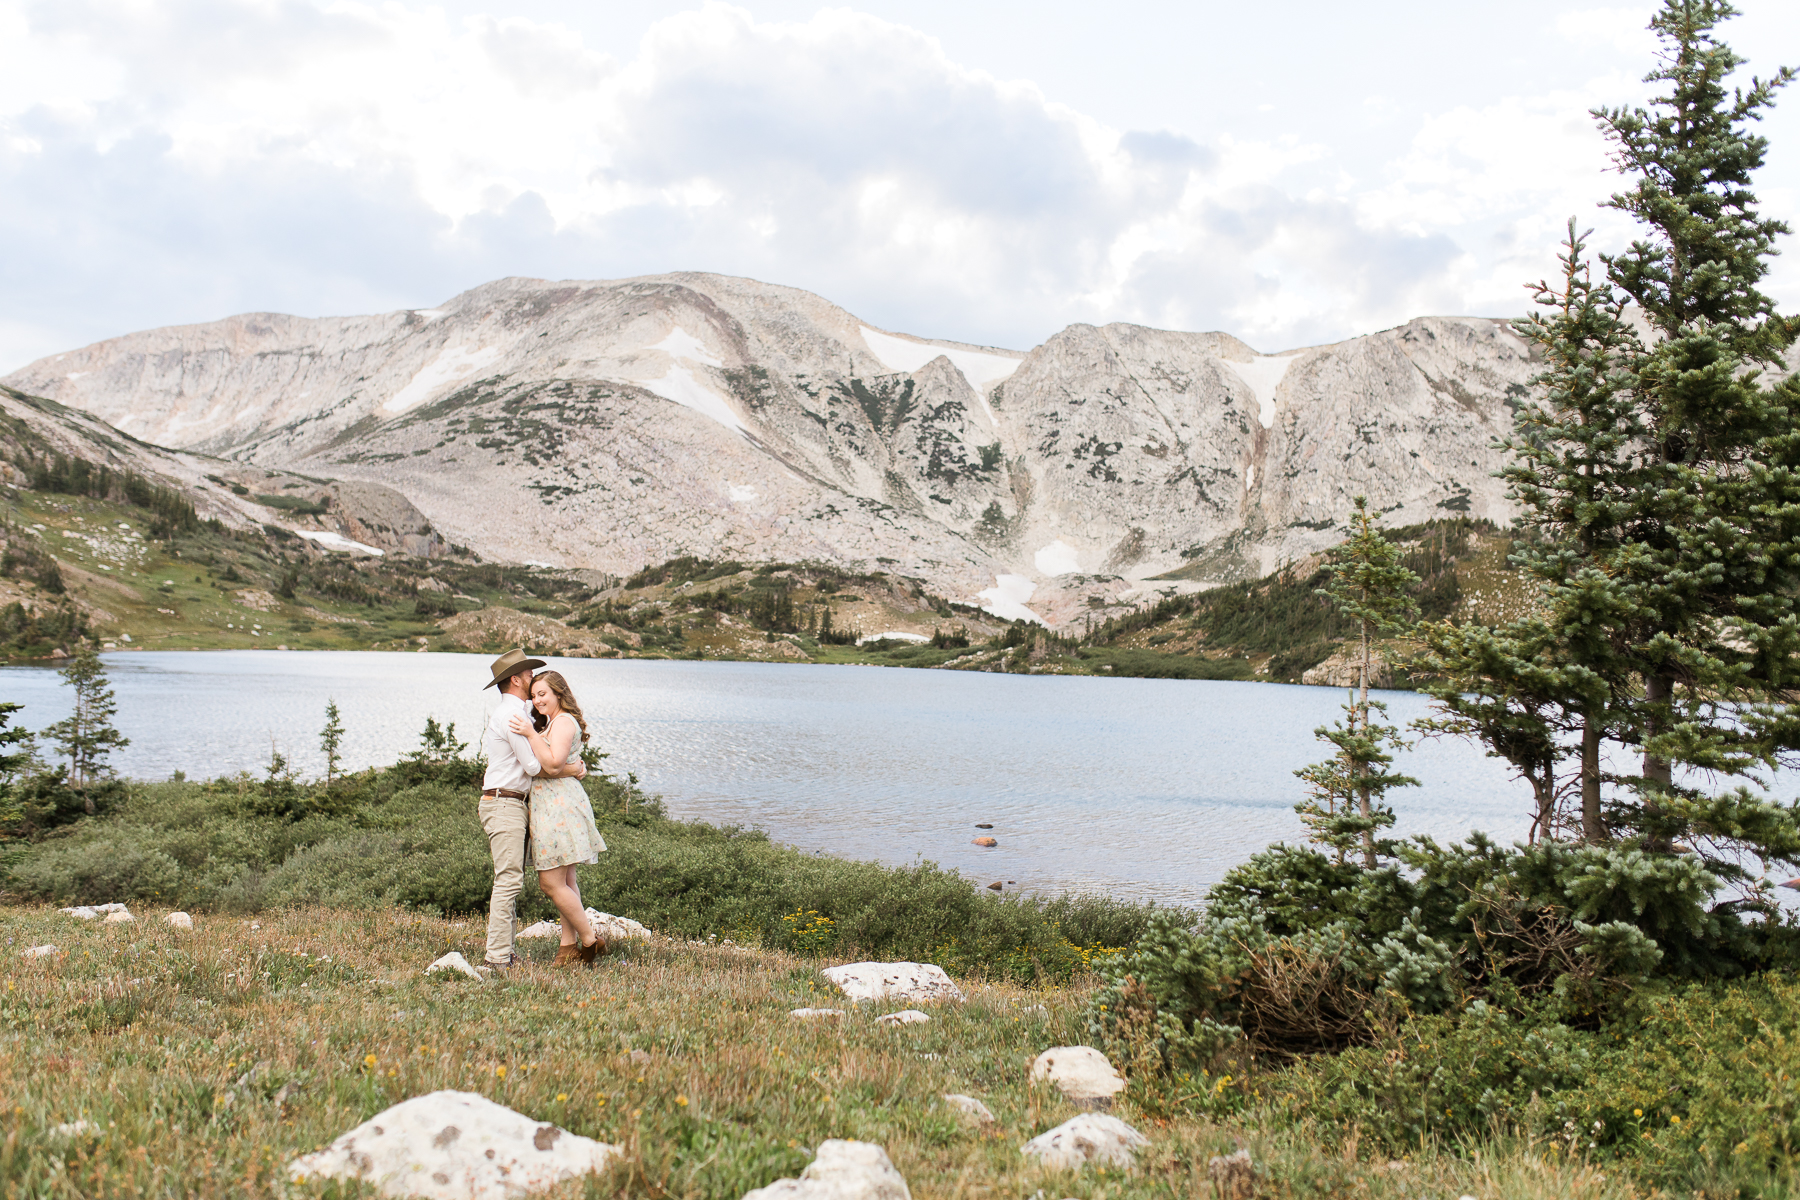 Snowy Range Engagements in Wyoming by Laramie based photographer, Megan Lee Photography